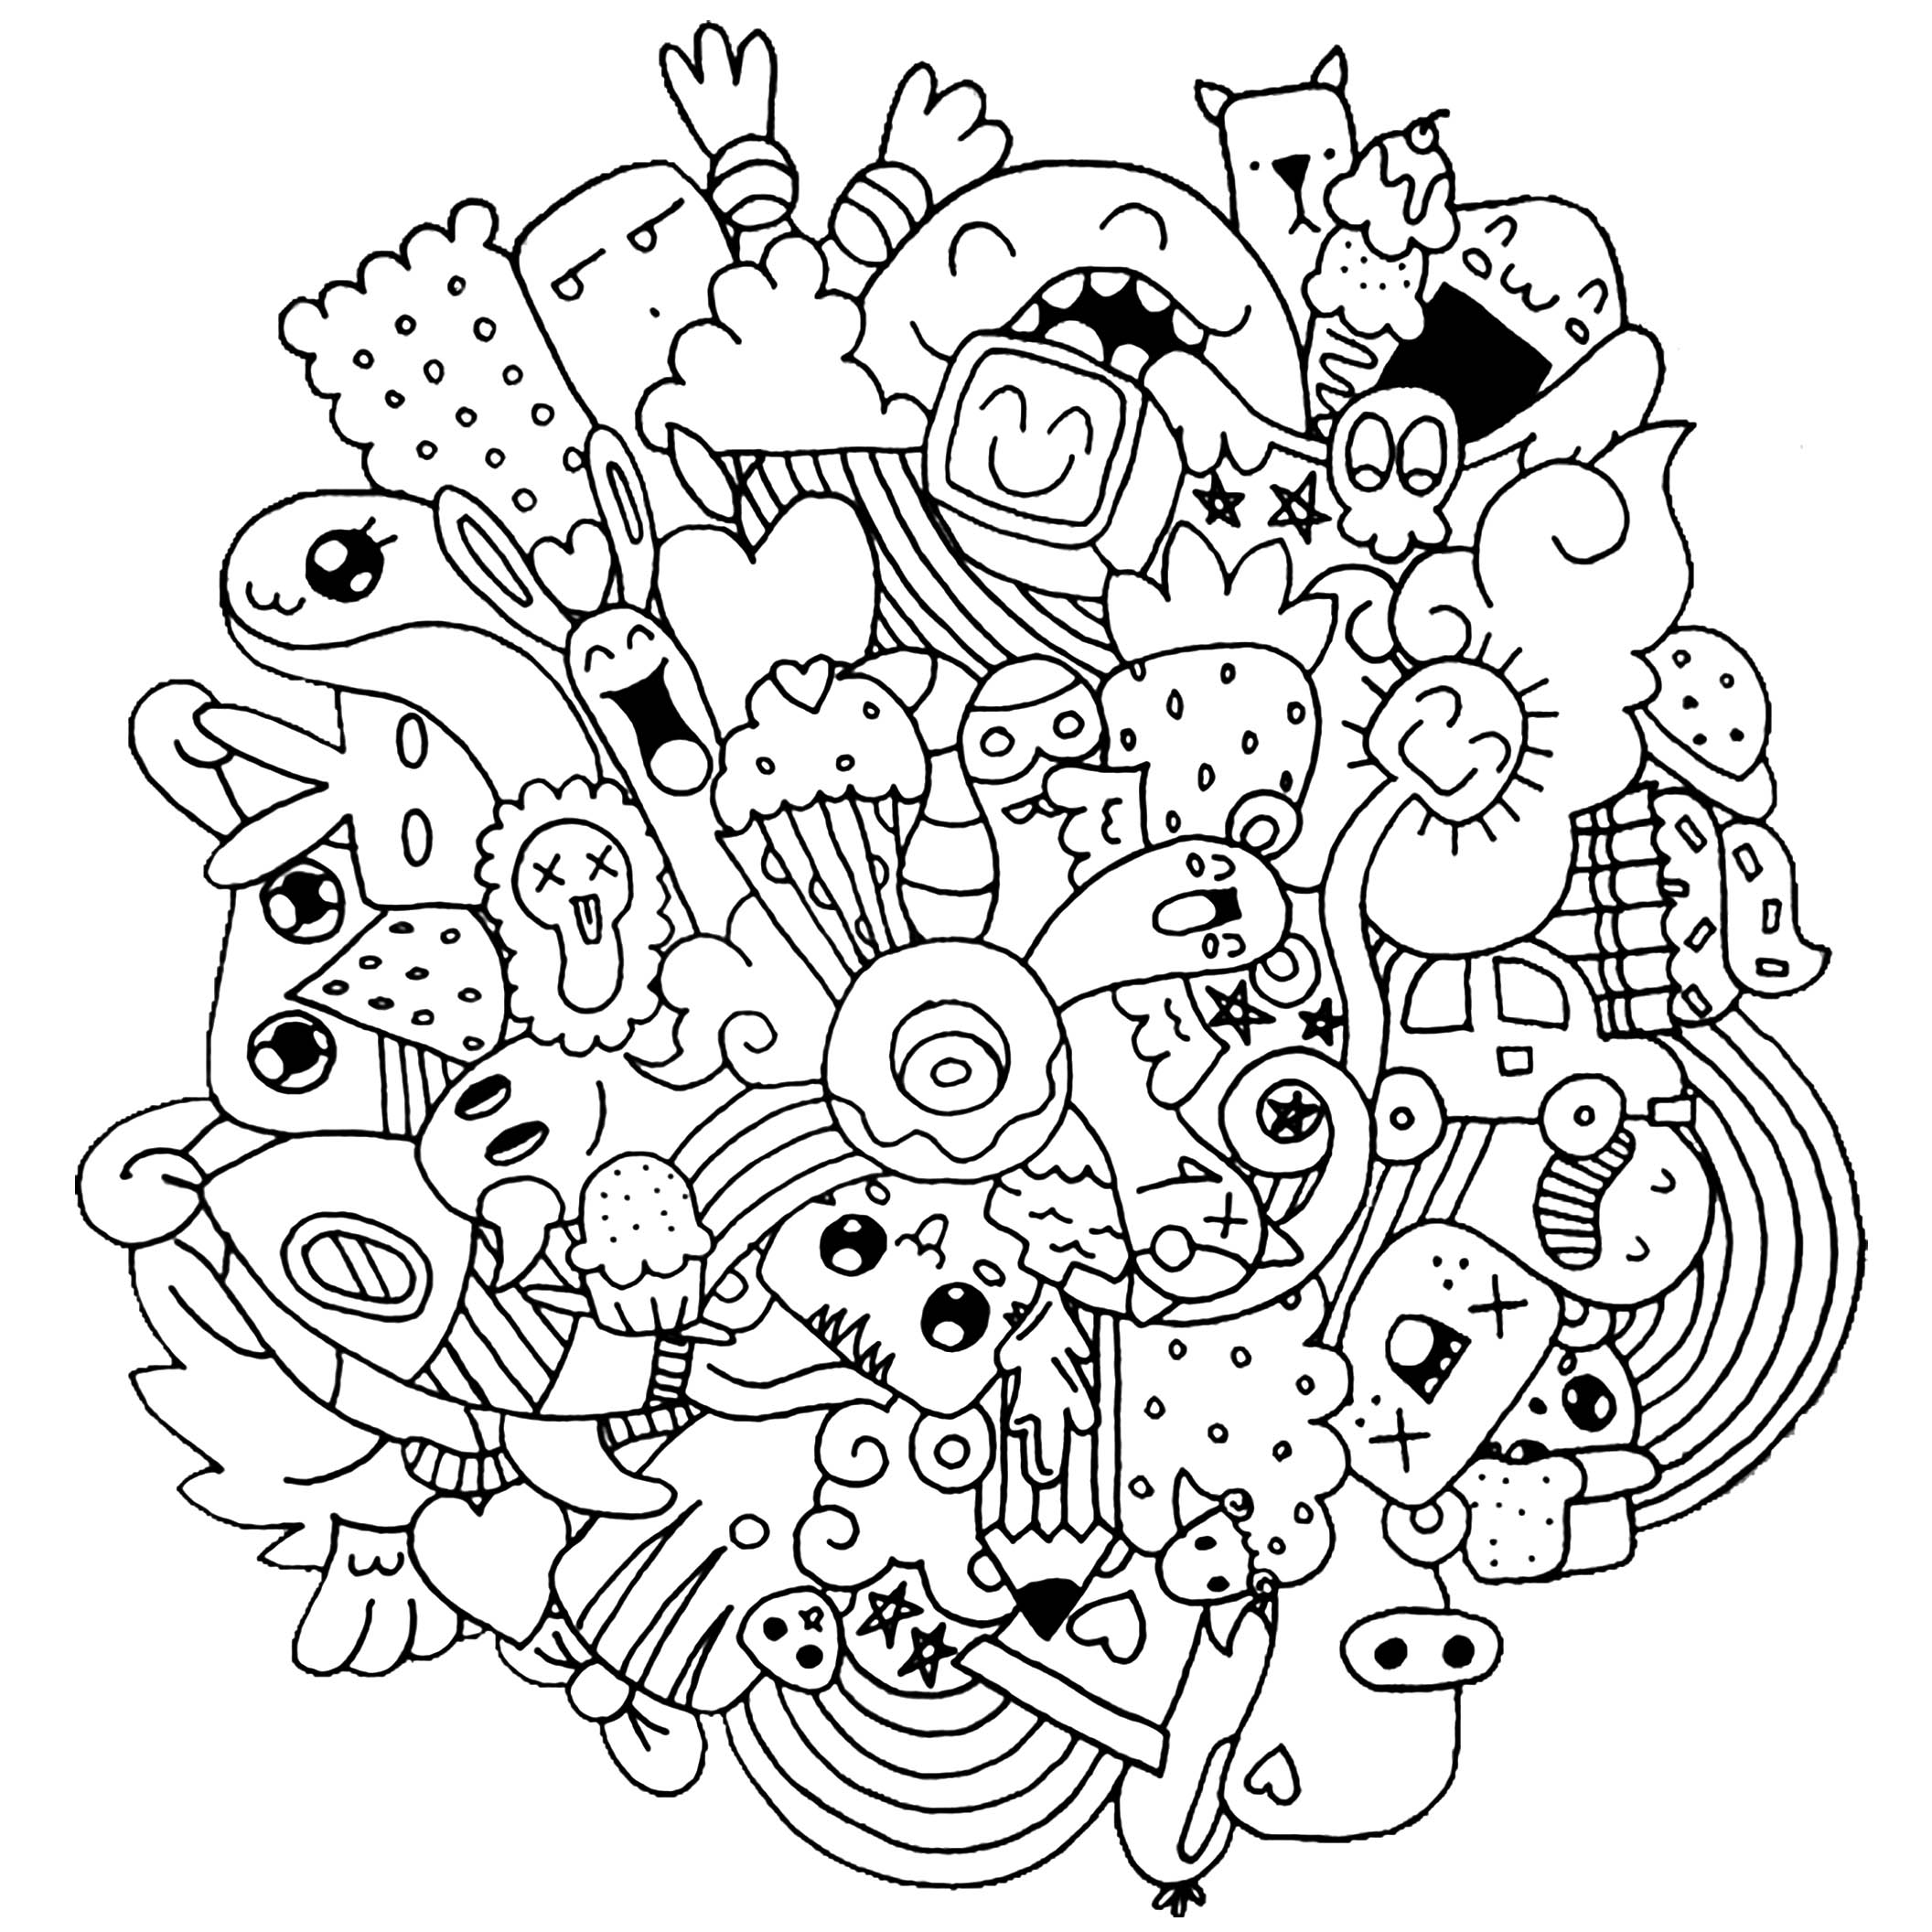 doodle coloring pages doodle coloring pages best coloring pages for kids pages coloring doodle